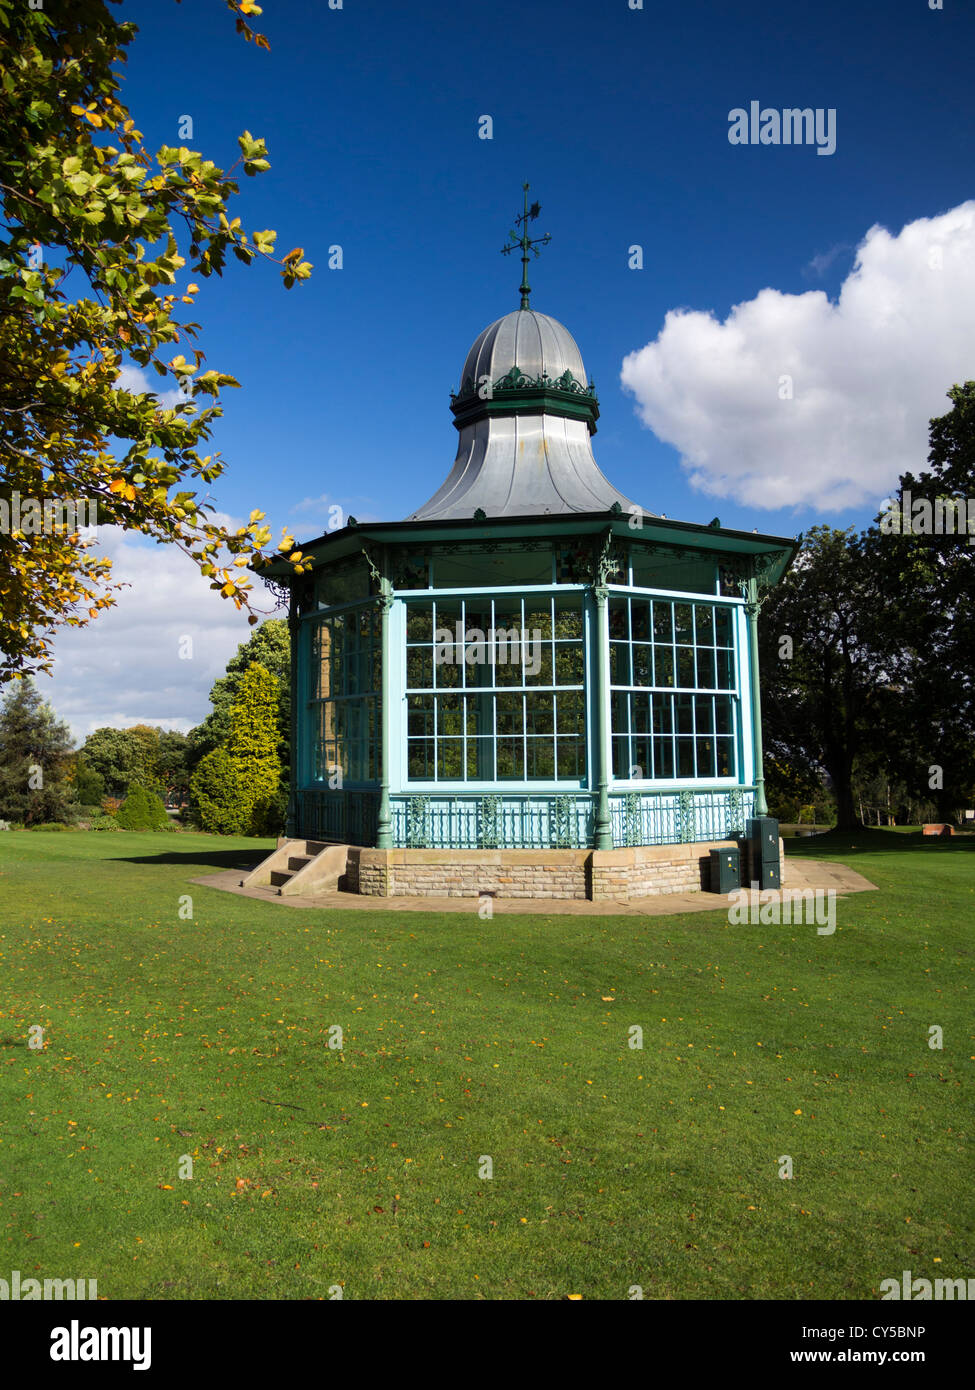 Victorian Bandstand renovated in Weston Park Sheffield South Yorkshire England - Stock Image